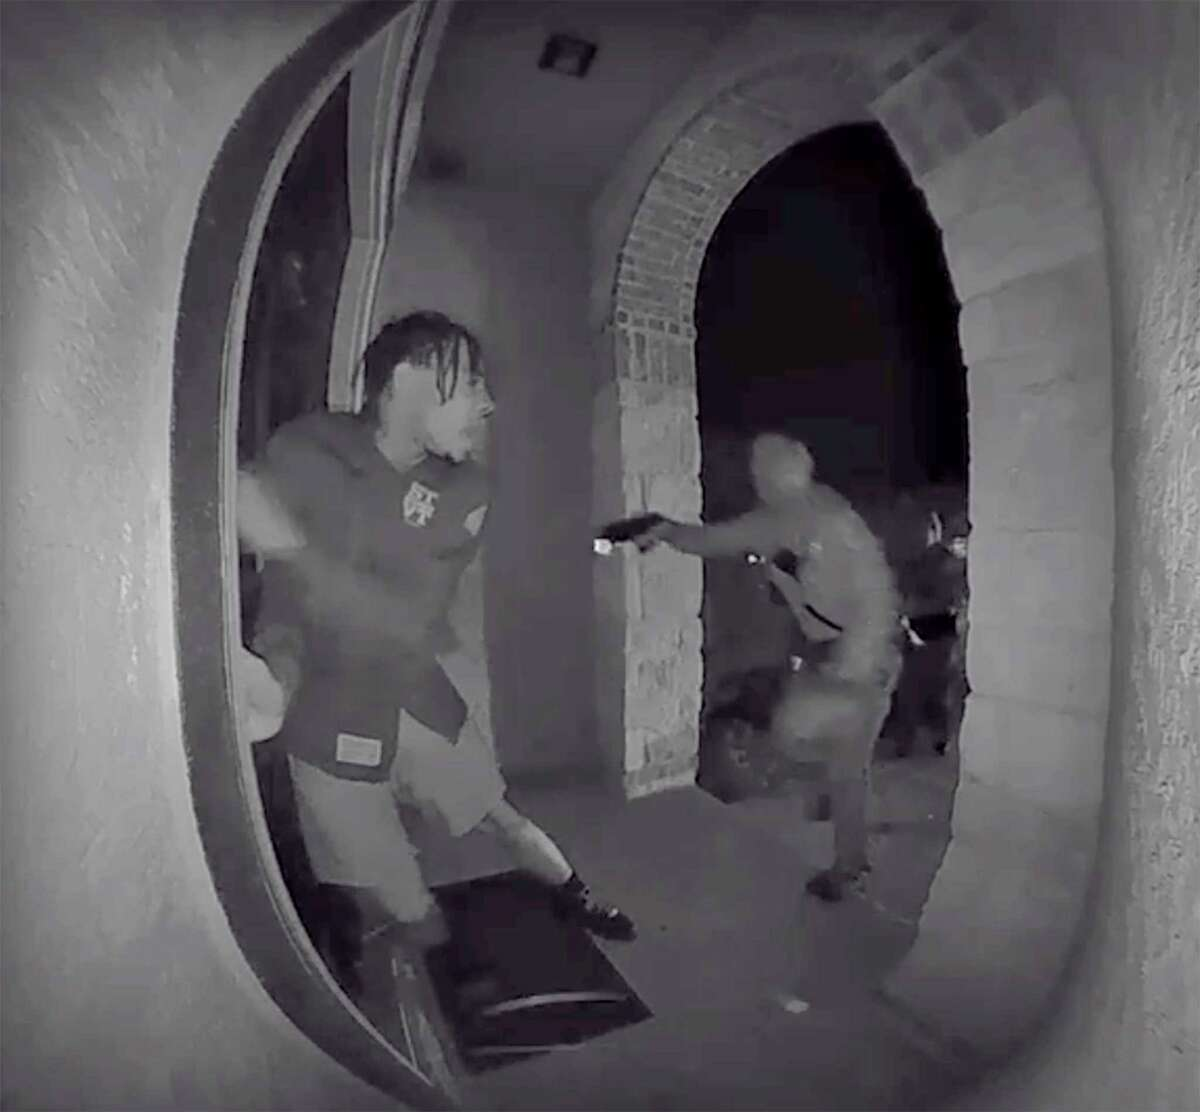 A screen grab from a 亚洲游国际集团home surveillance video shows one of three Schertz police officers pointing a weapon at Zekee Rayford, 18, on the front steps of his 亚洲游国际集团home.